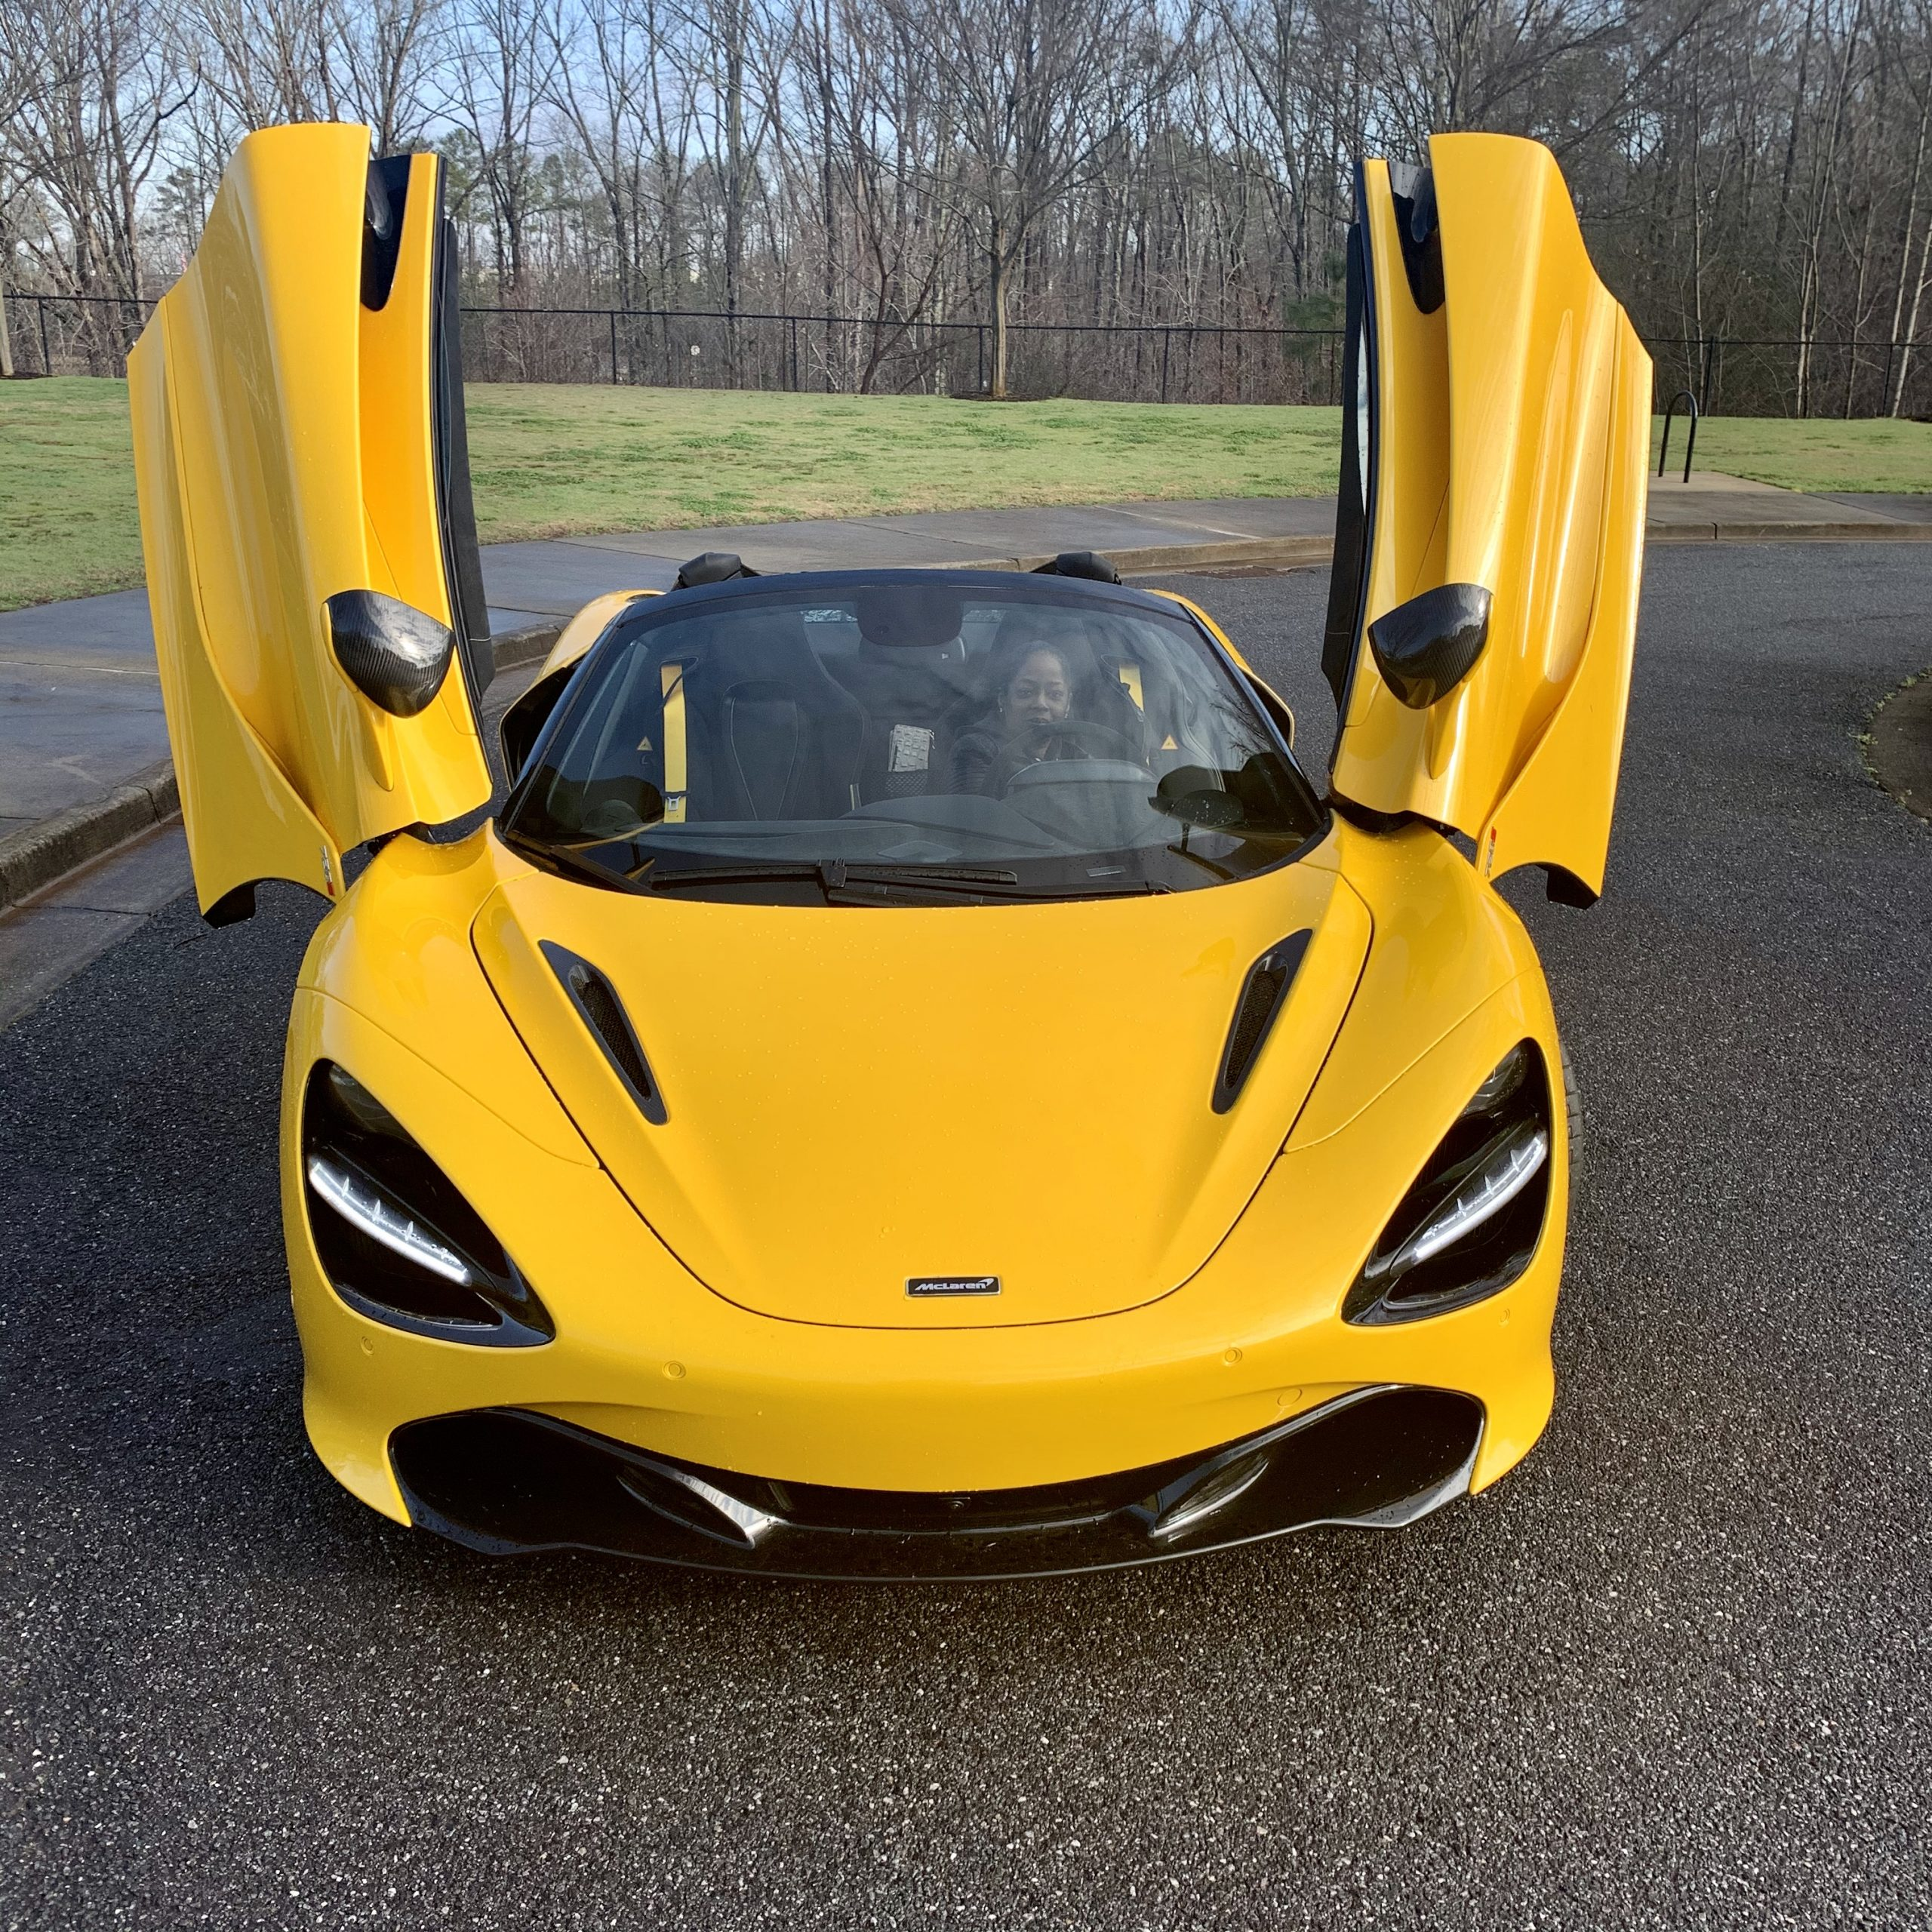 Ten Things I Learned While Driving The 2019 McLaren 720s Spider